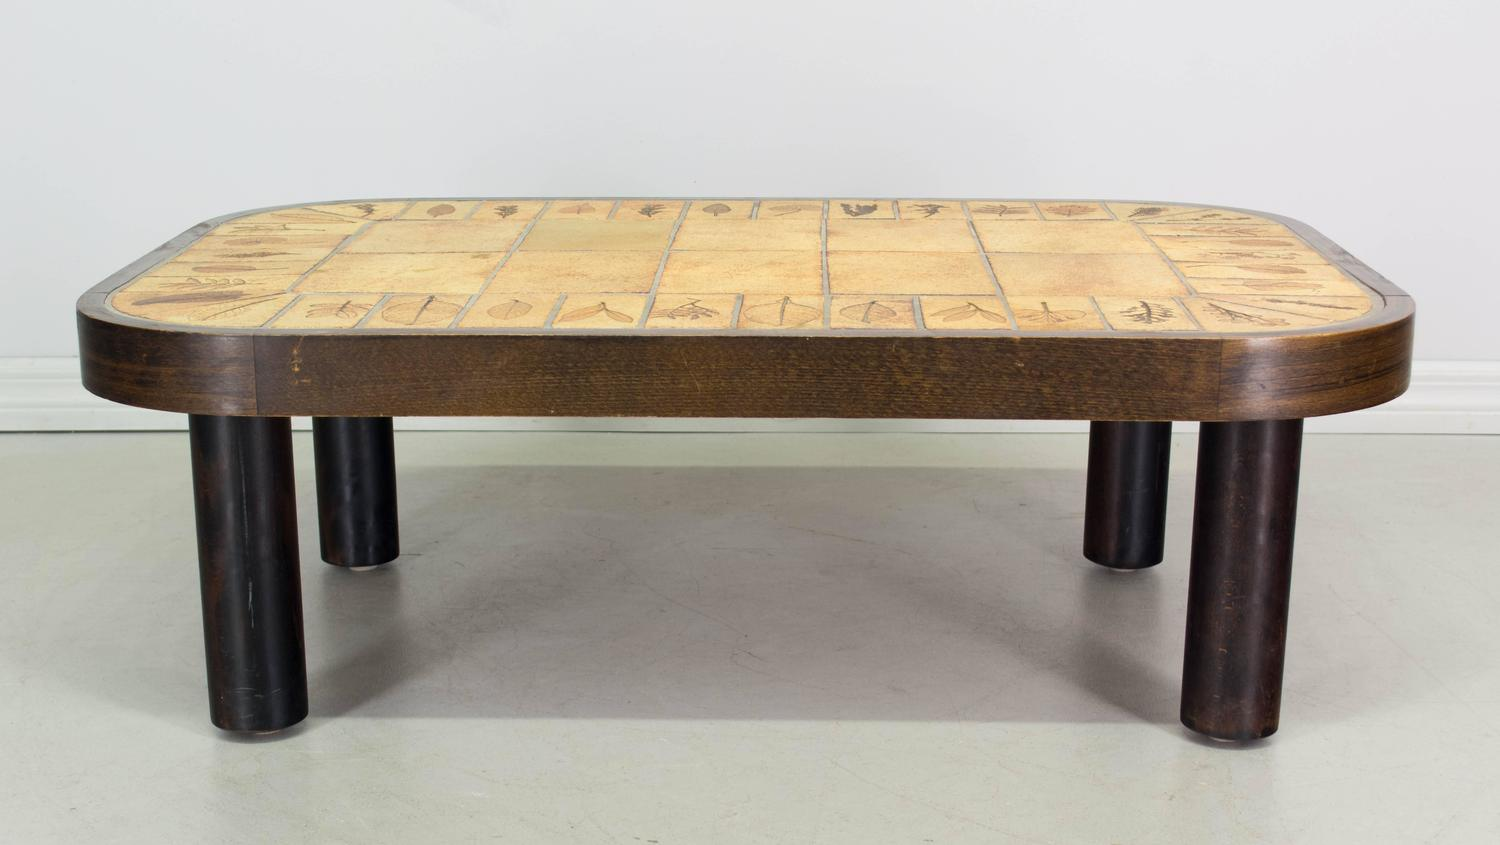 roger capron ceramic tile top coffee table for sale at 1stdibs